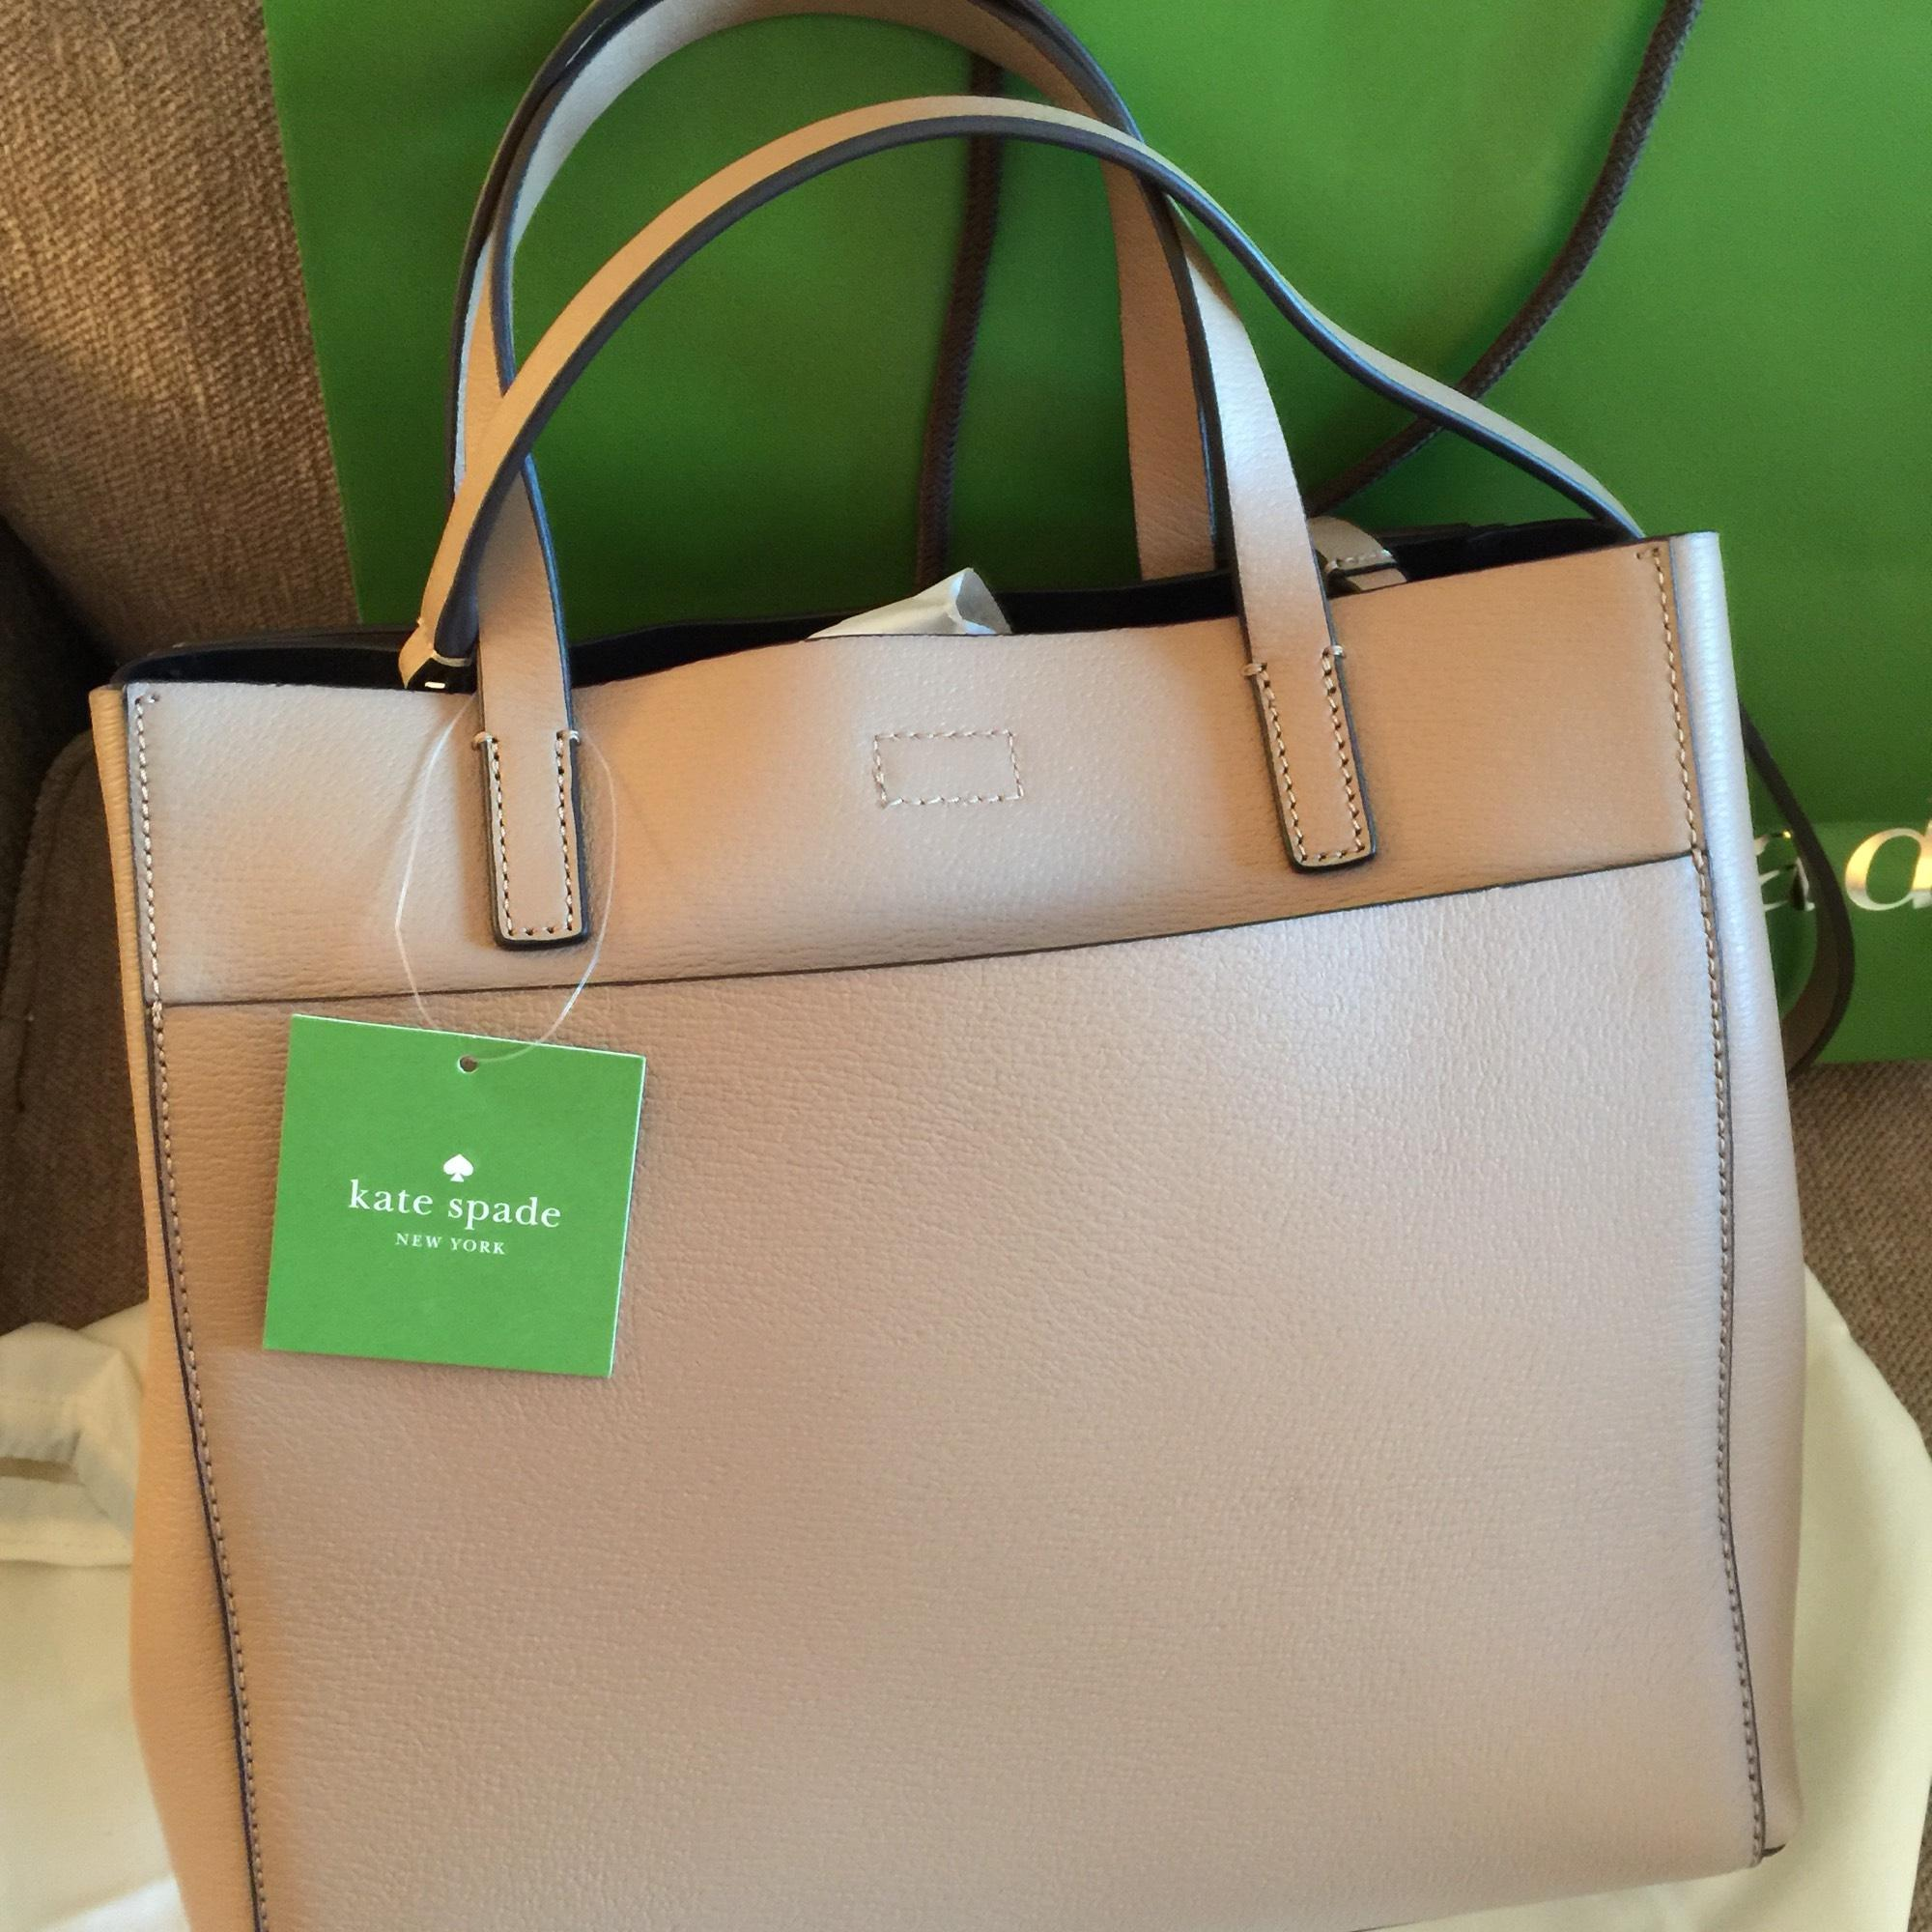 20+ Kate Hudson Handbag Tan Pictures and Ideas on Meta Networks 3b1e184a68288